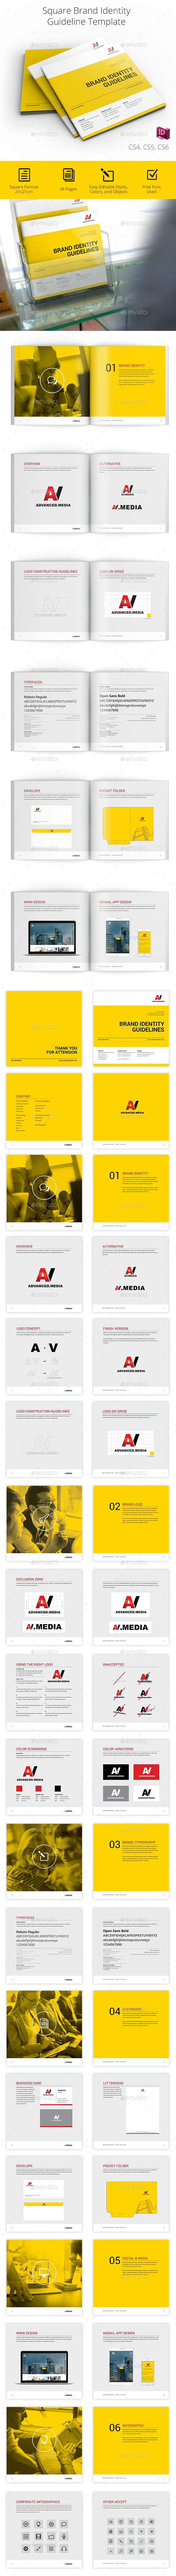 Square Brand Identity Guidelines — InDesign INDD #business proposal ...